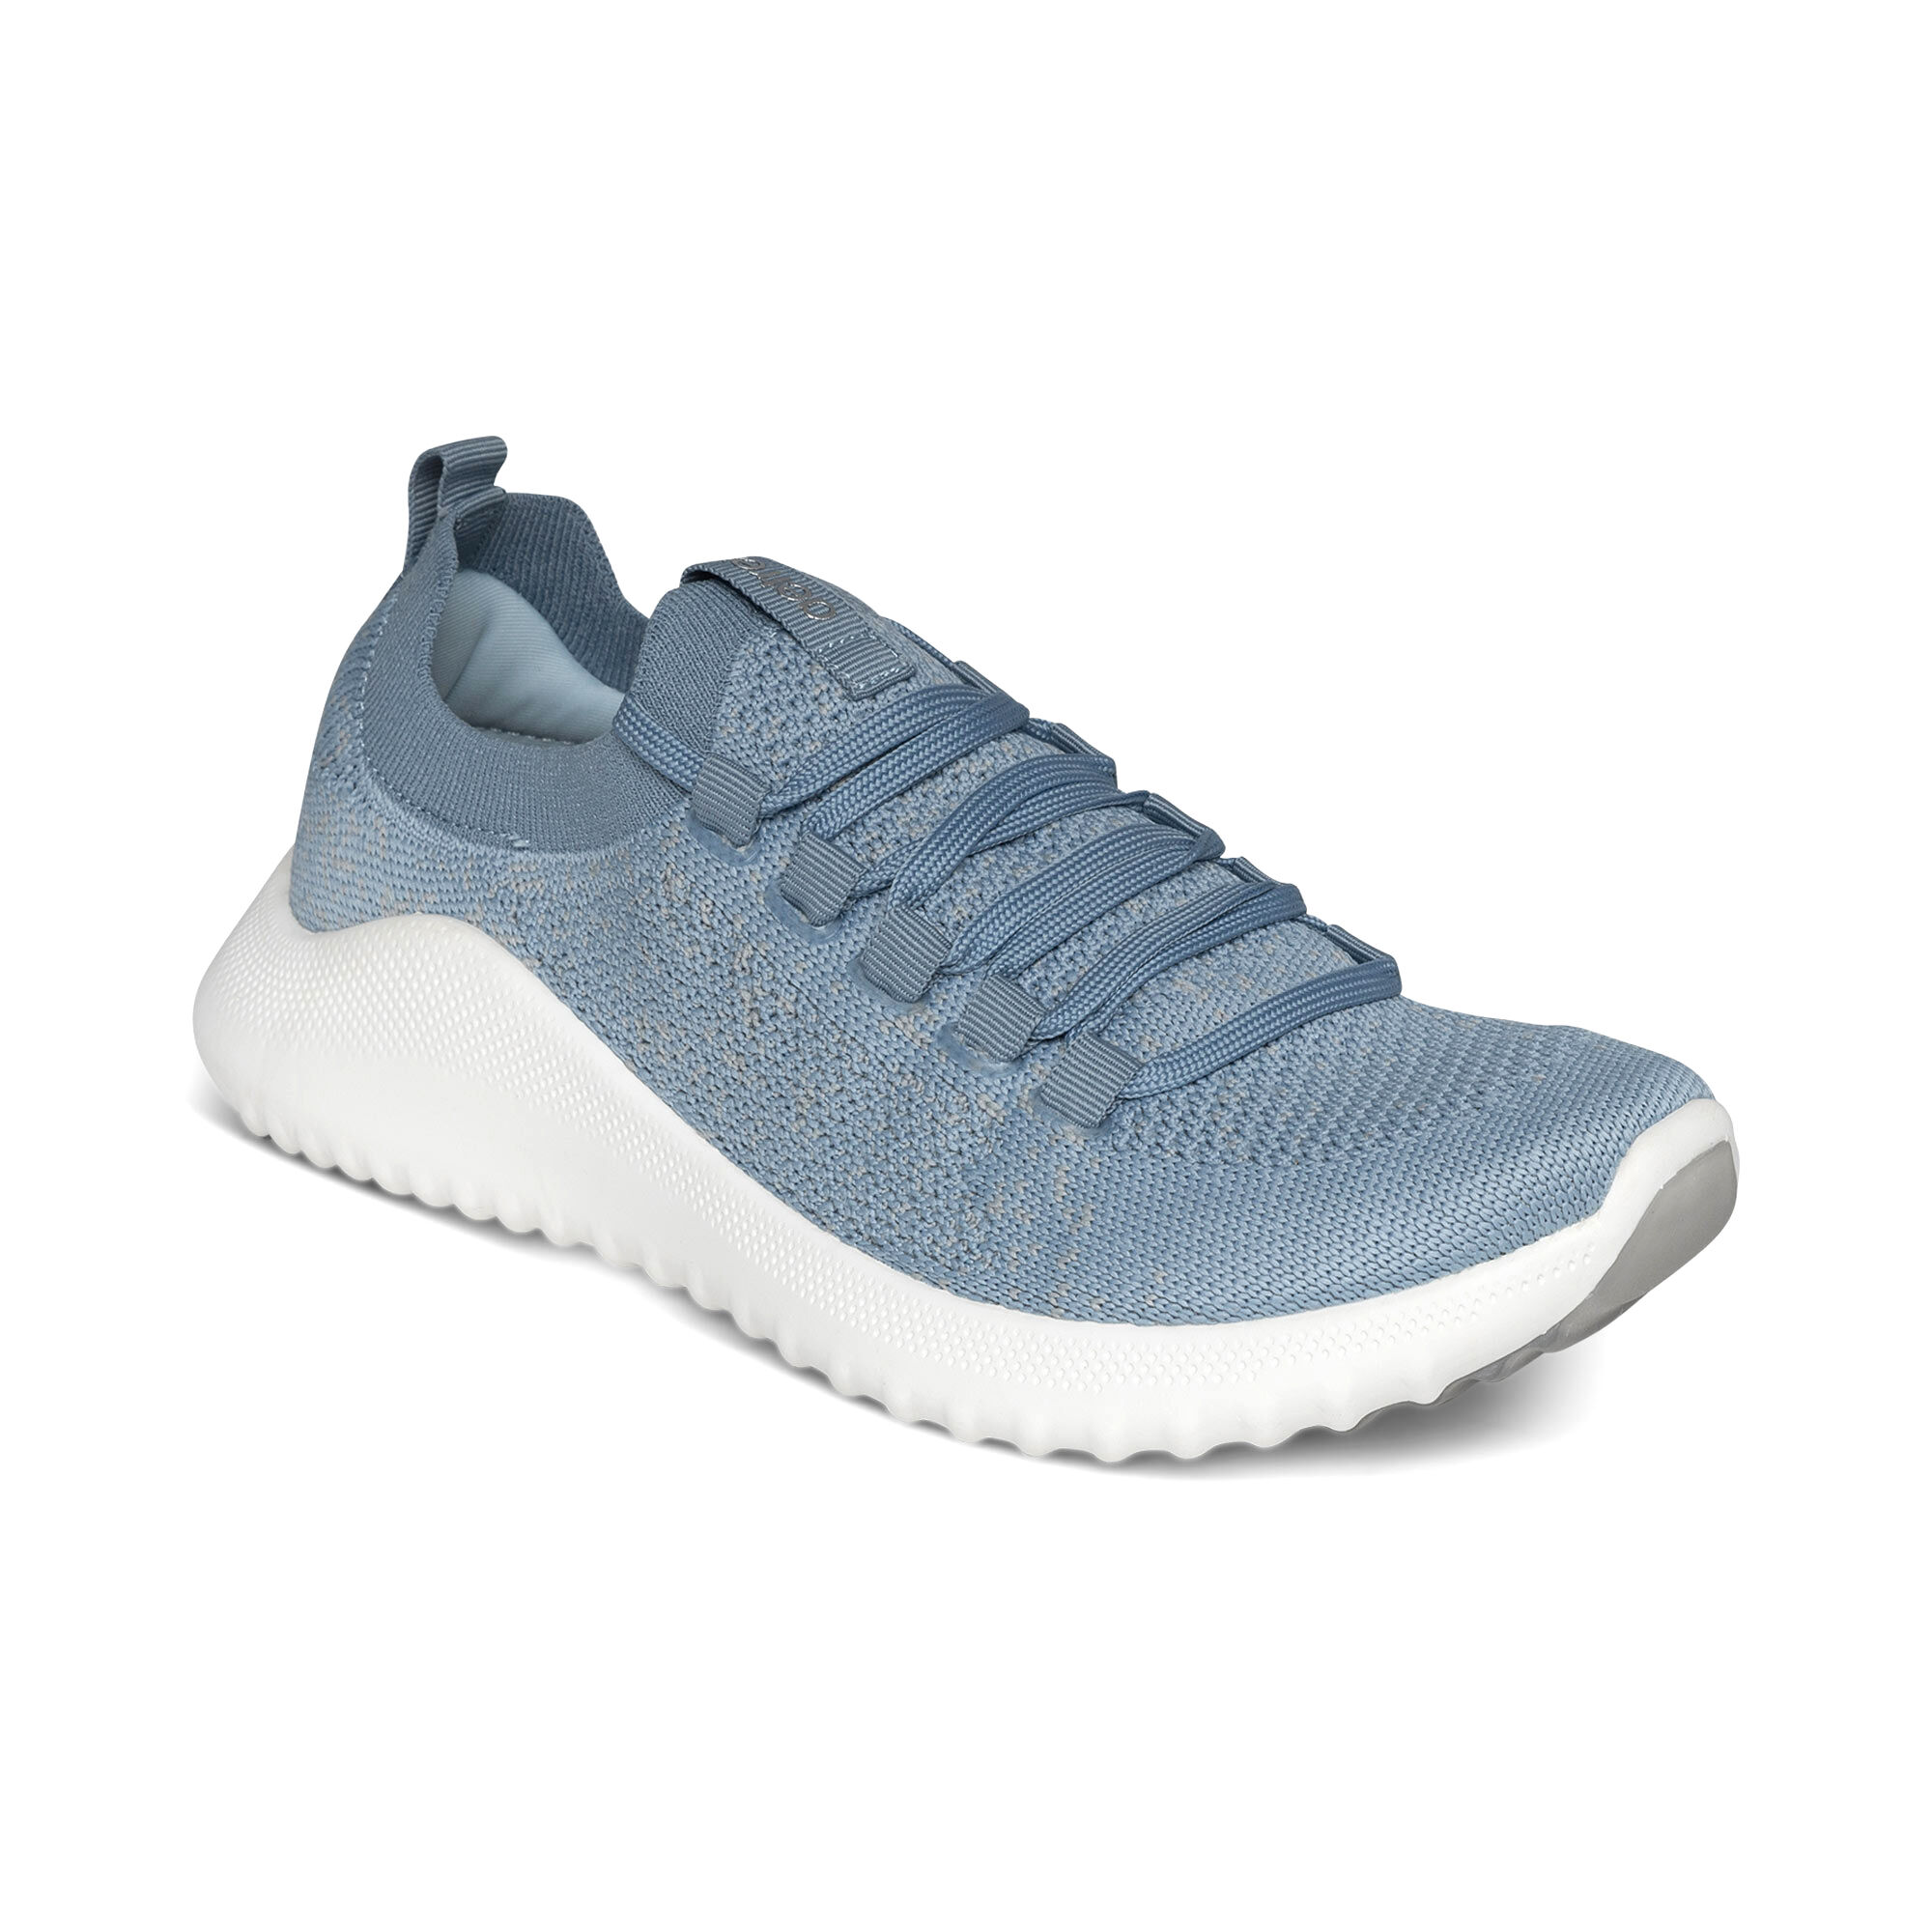 sneakers with good arch support